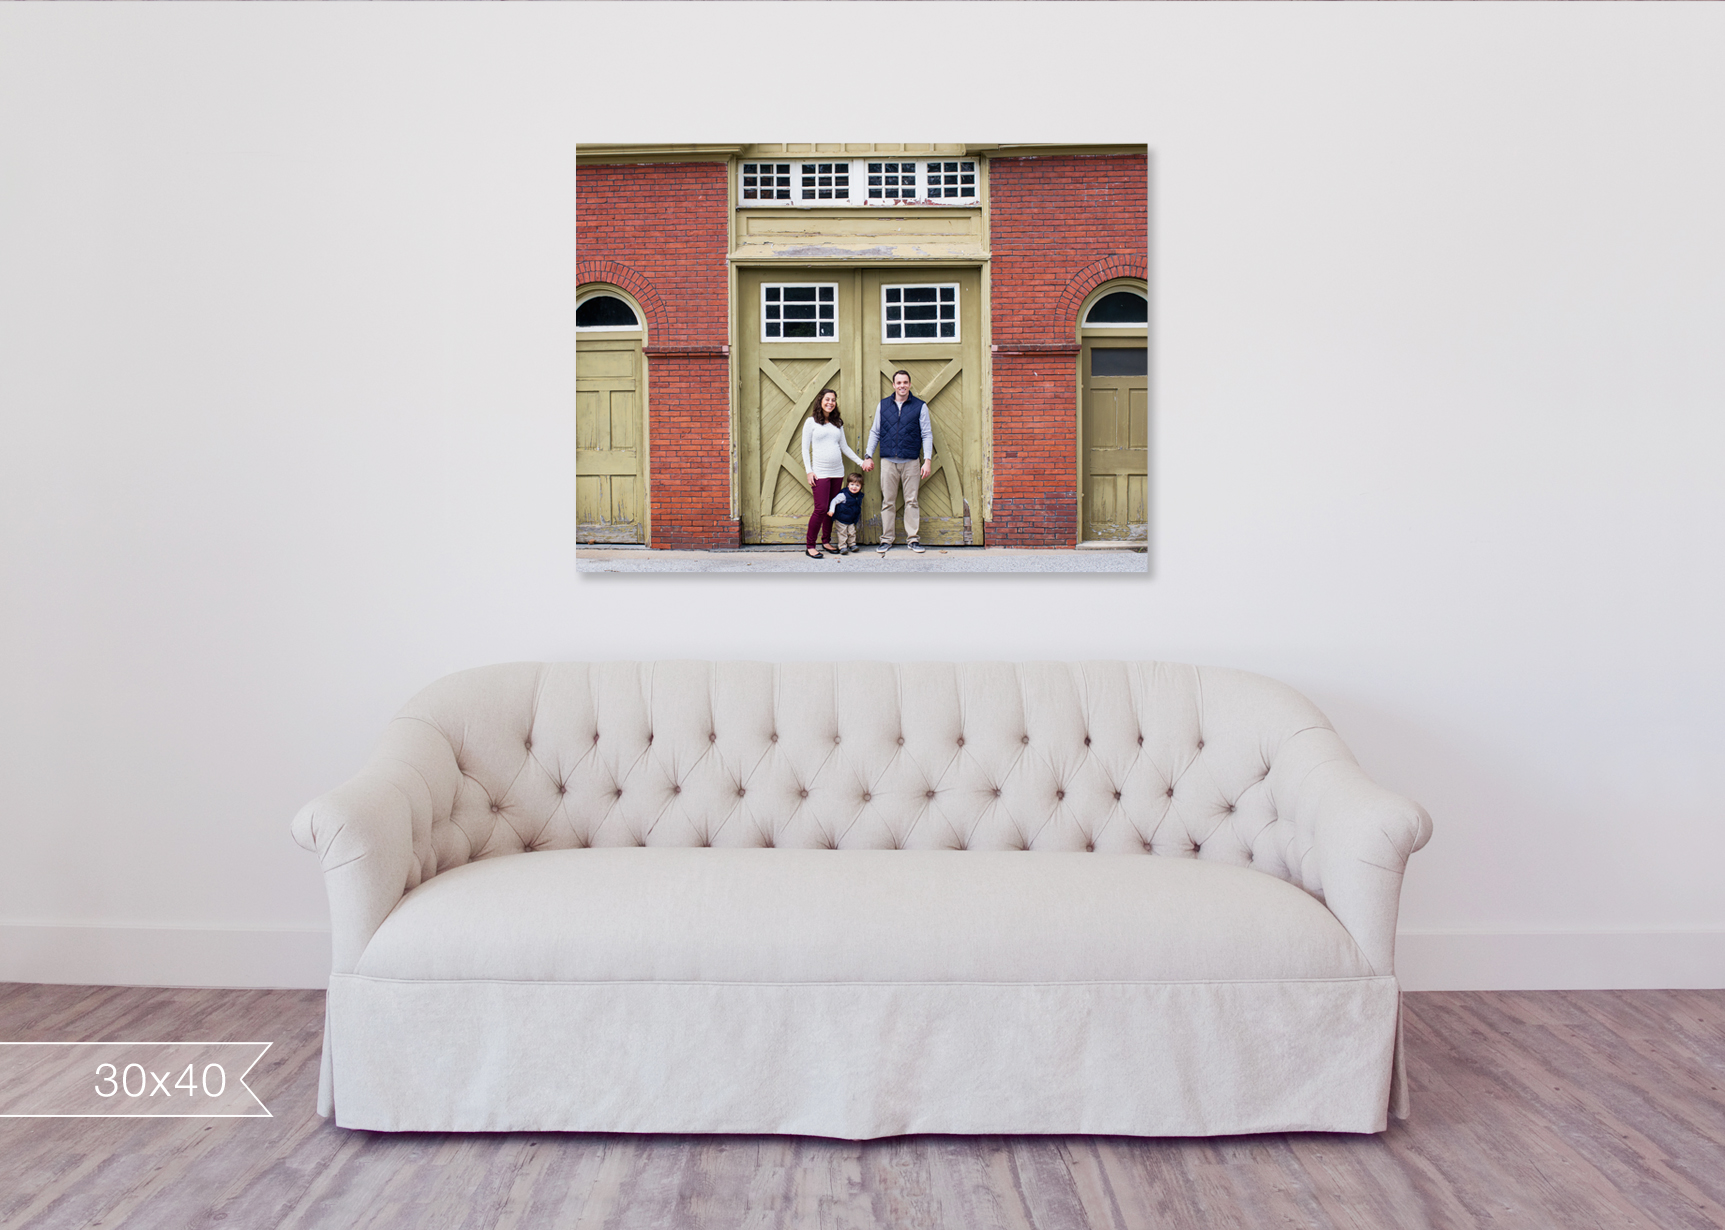 30x40 above couch.jpg